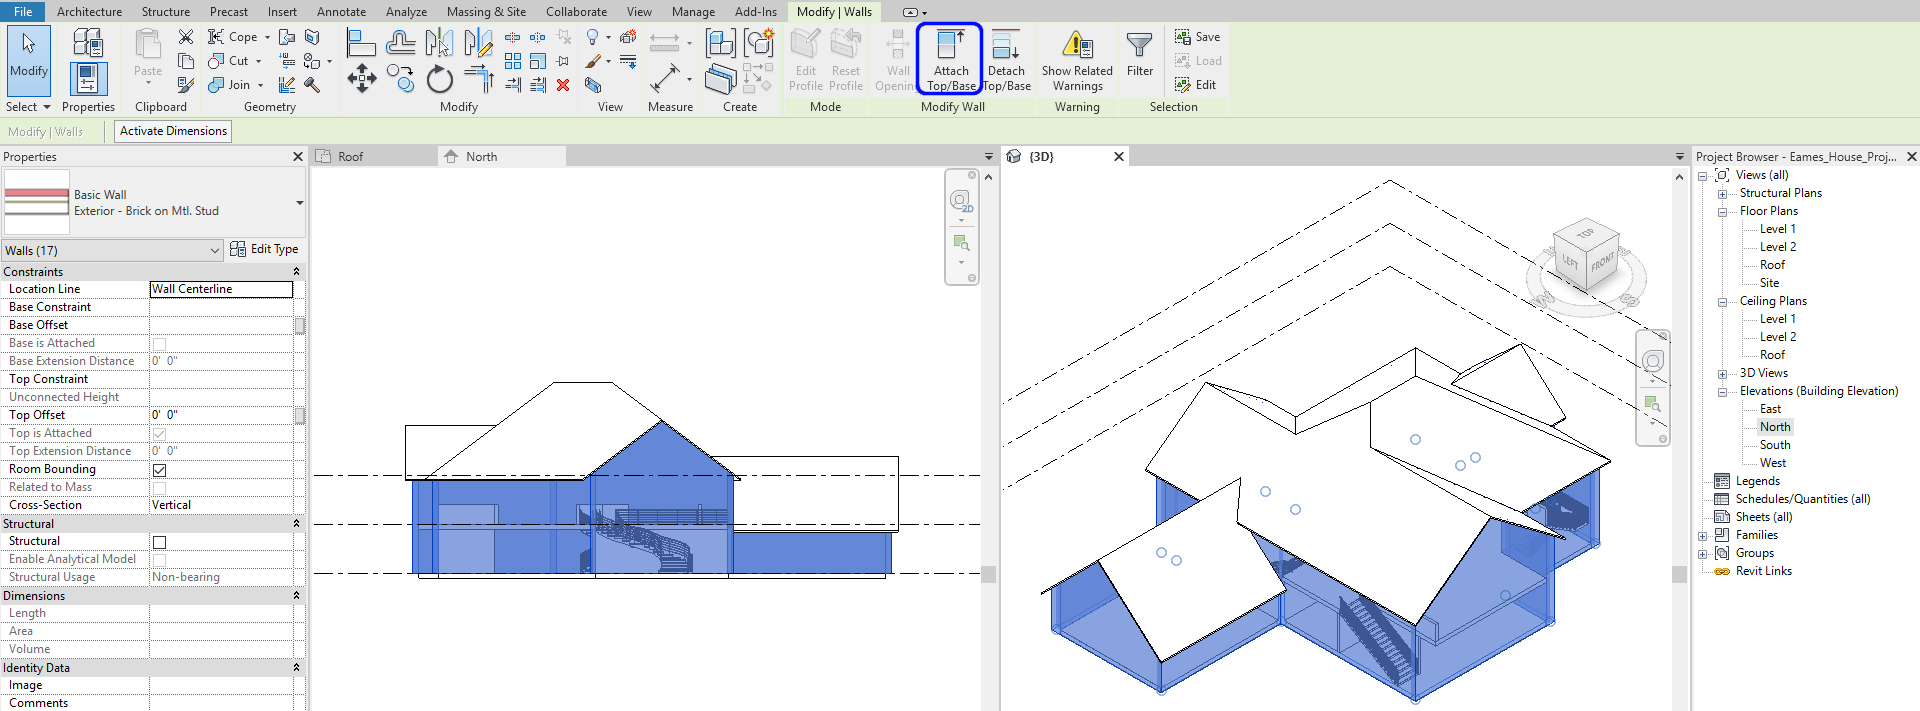 It shows the resulting image after attaching the walls to the hip roof.